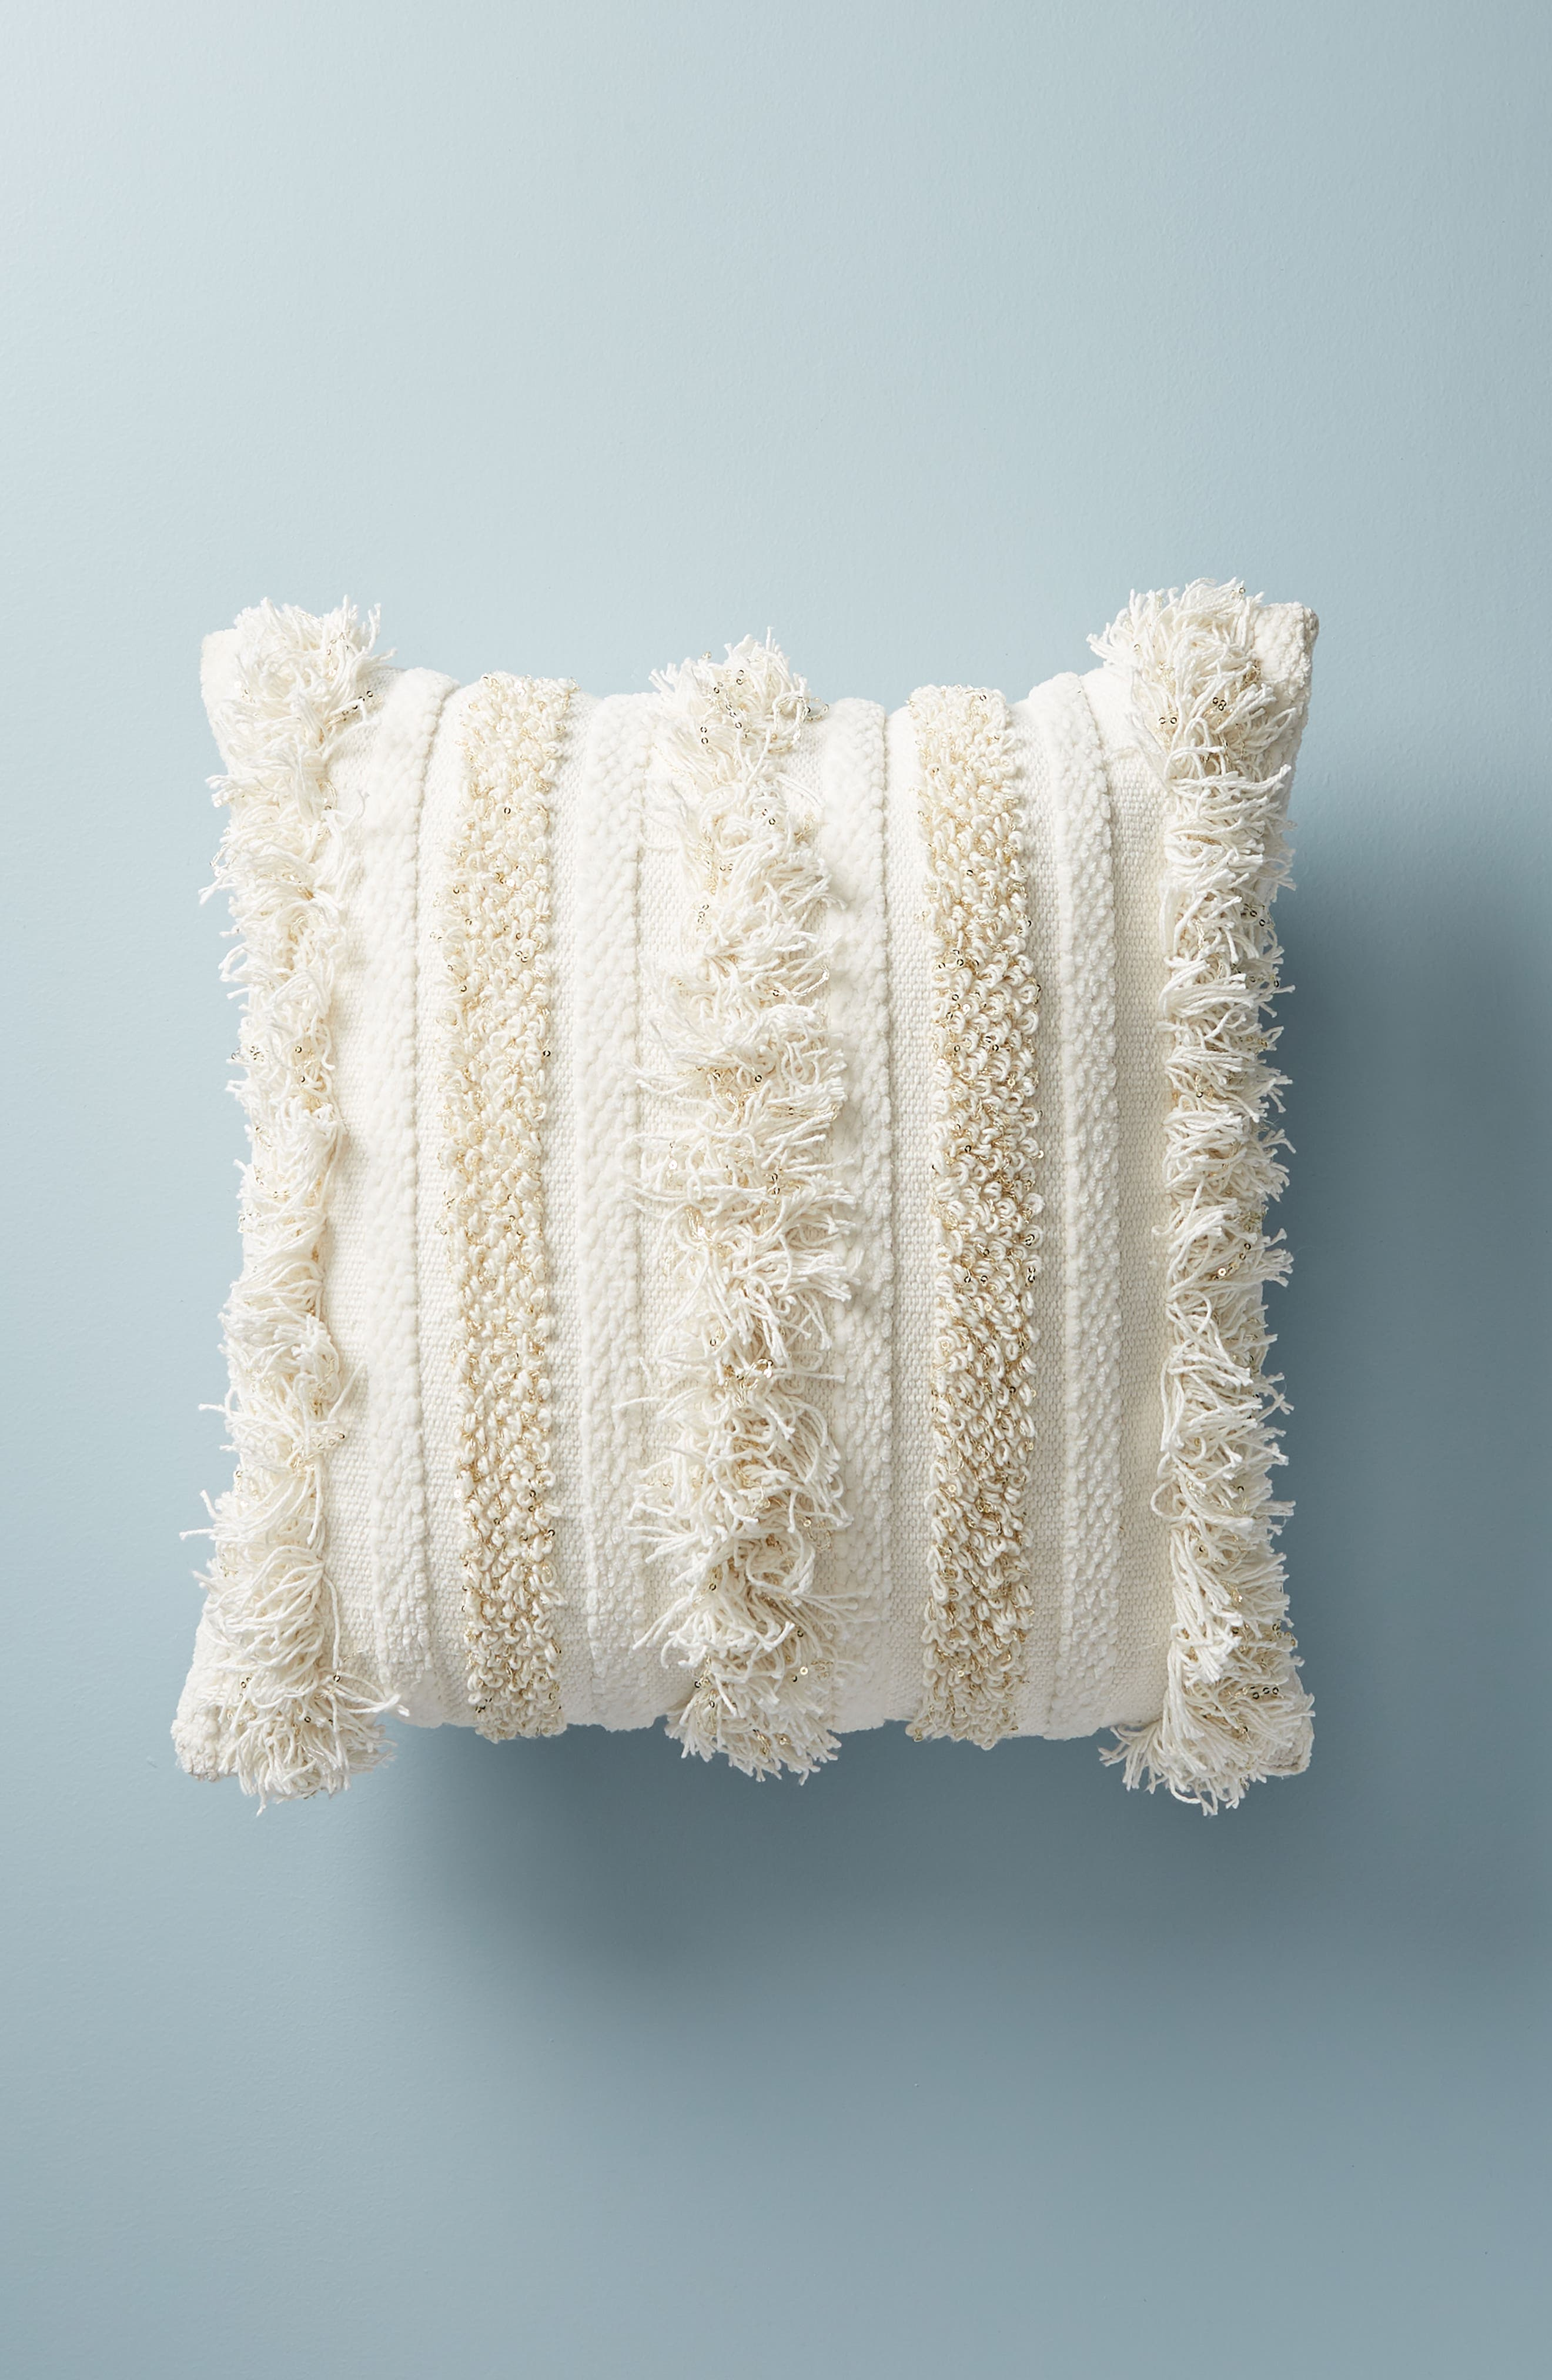 ANTHROPOLOGIE,                             Indira Accent Pillow,                             Alternate thumbnail 7, color,                             900